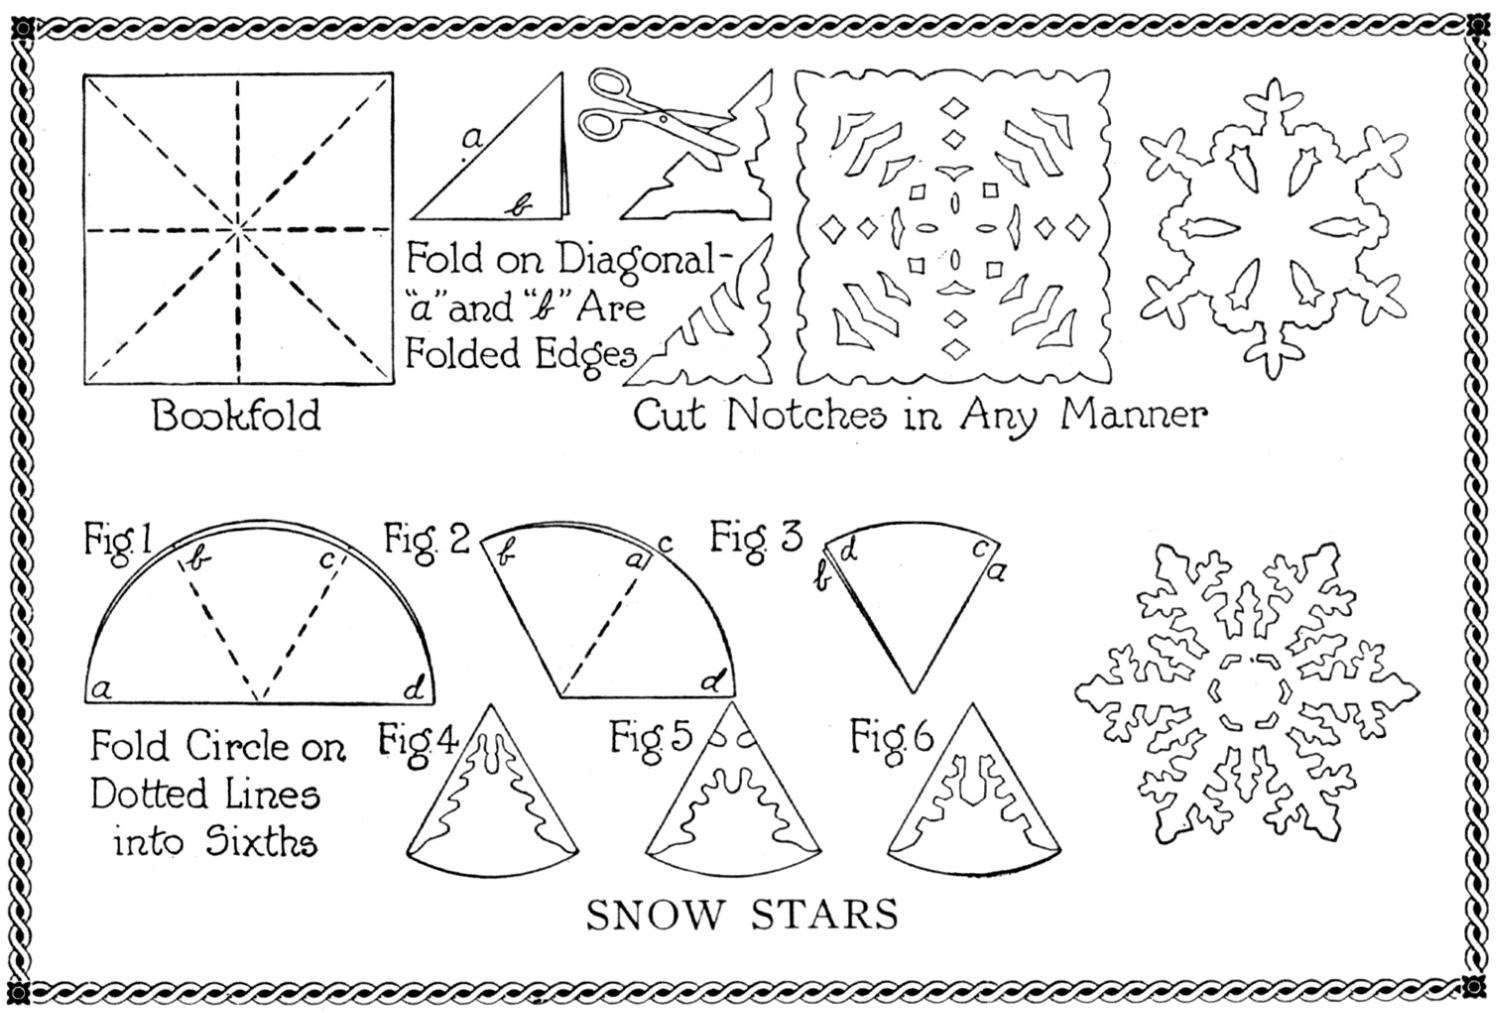 Snowflake Stencil printable designs for children and non-profit or